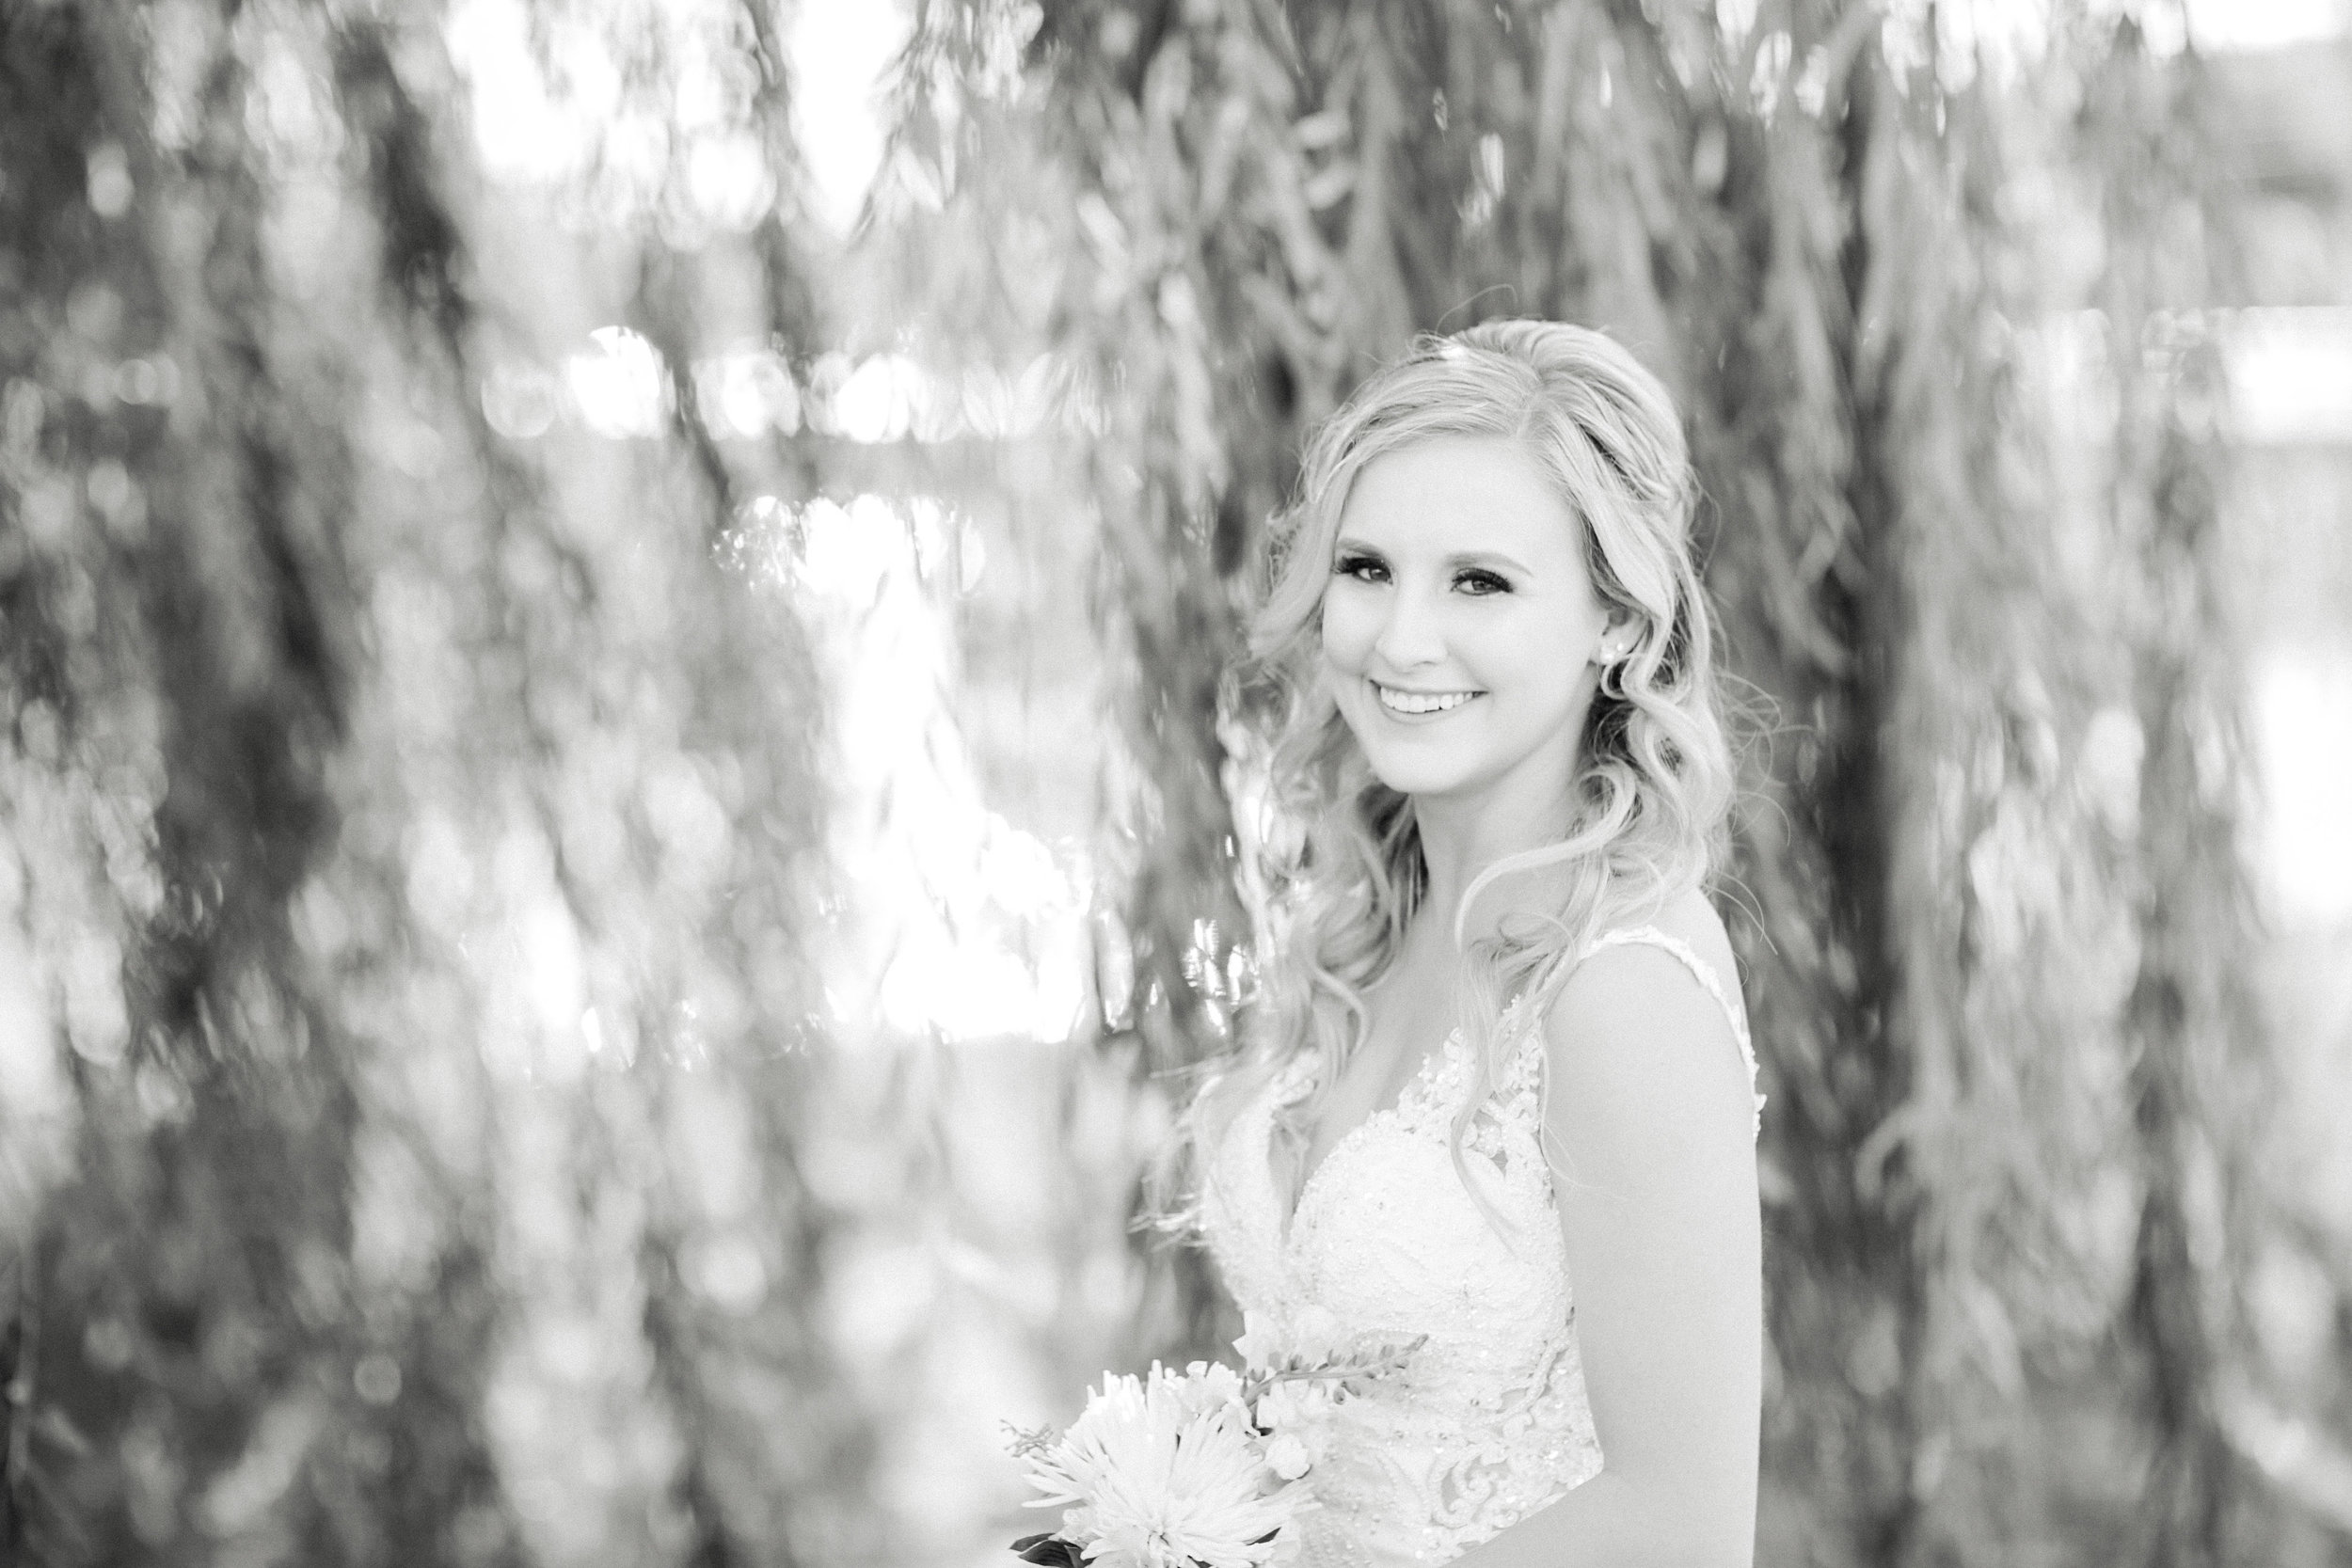 xKelsey-Bridals-020-BW.jpg